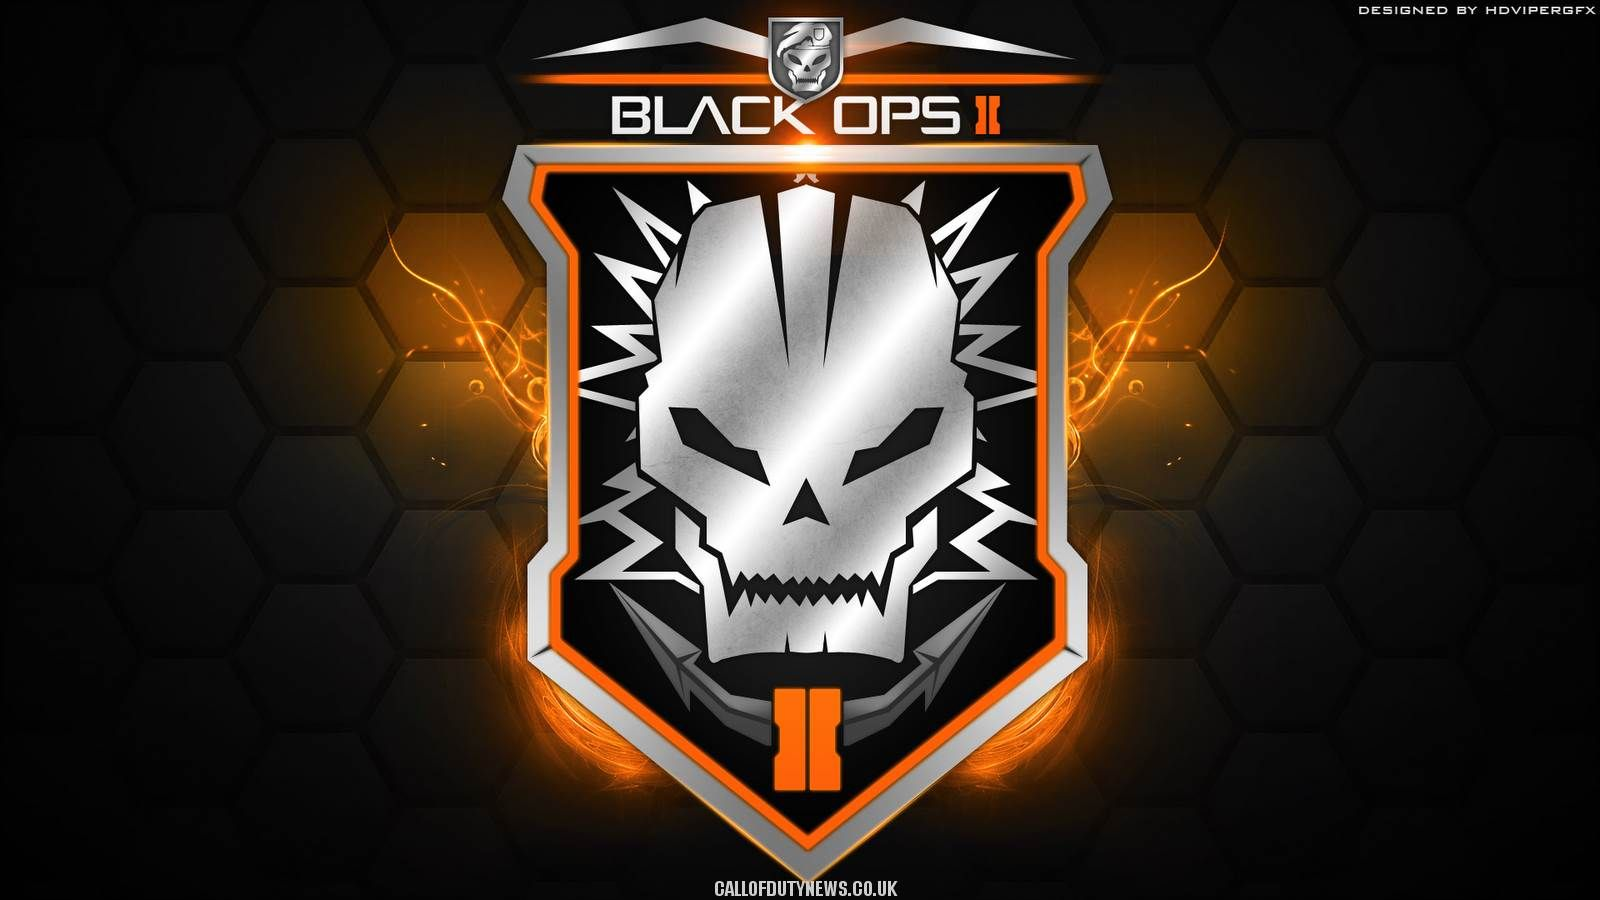 Call of duty black ops ii wallpapers group 19201080 call of duty call of duty black ops ii wallpapers group 19201080 call of duty wallpapers voltagebd Image collections